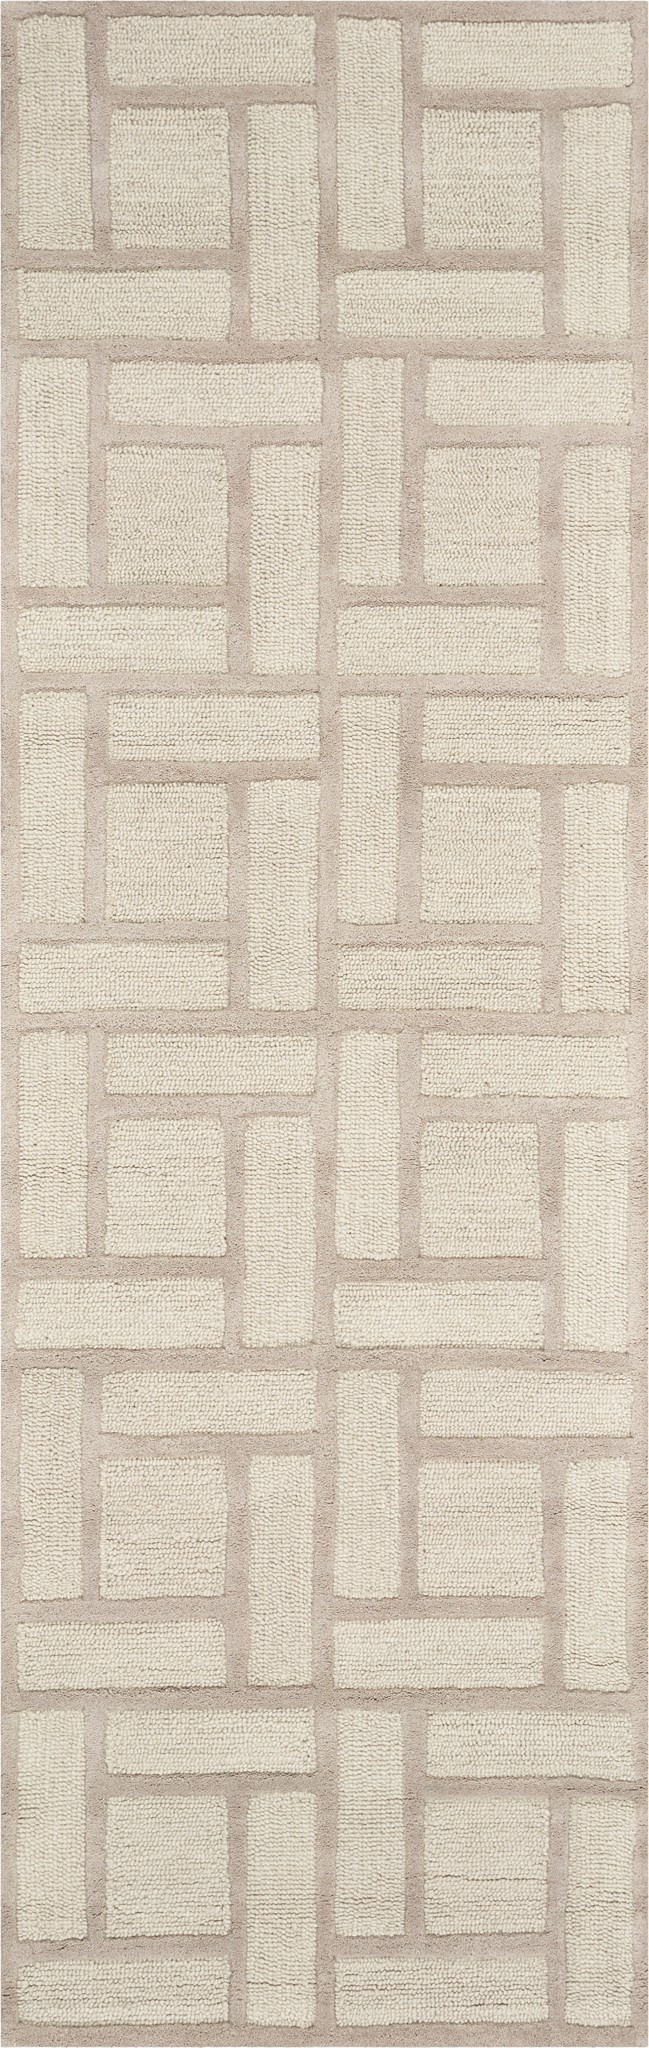 Soho 5023 Tan/Ivory Brick by Brick